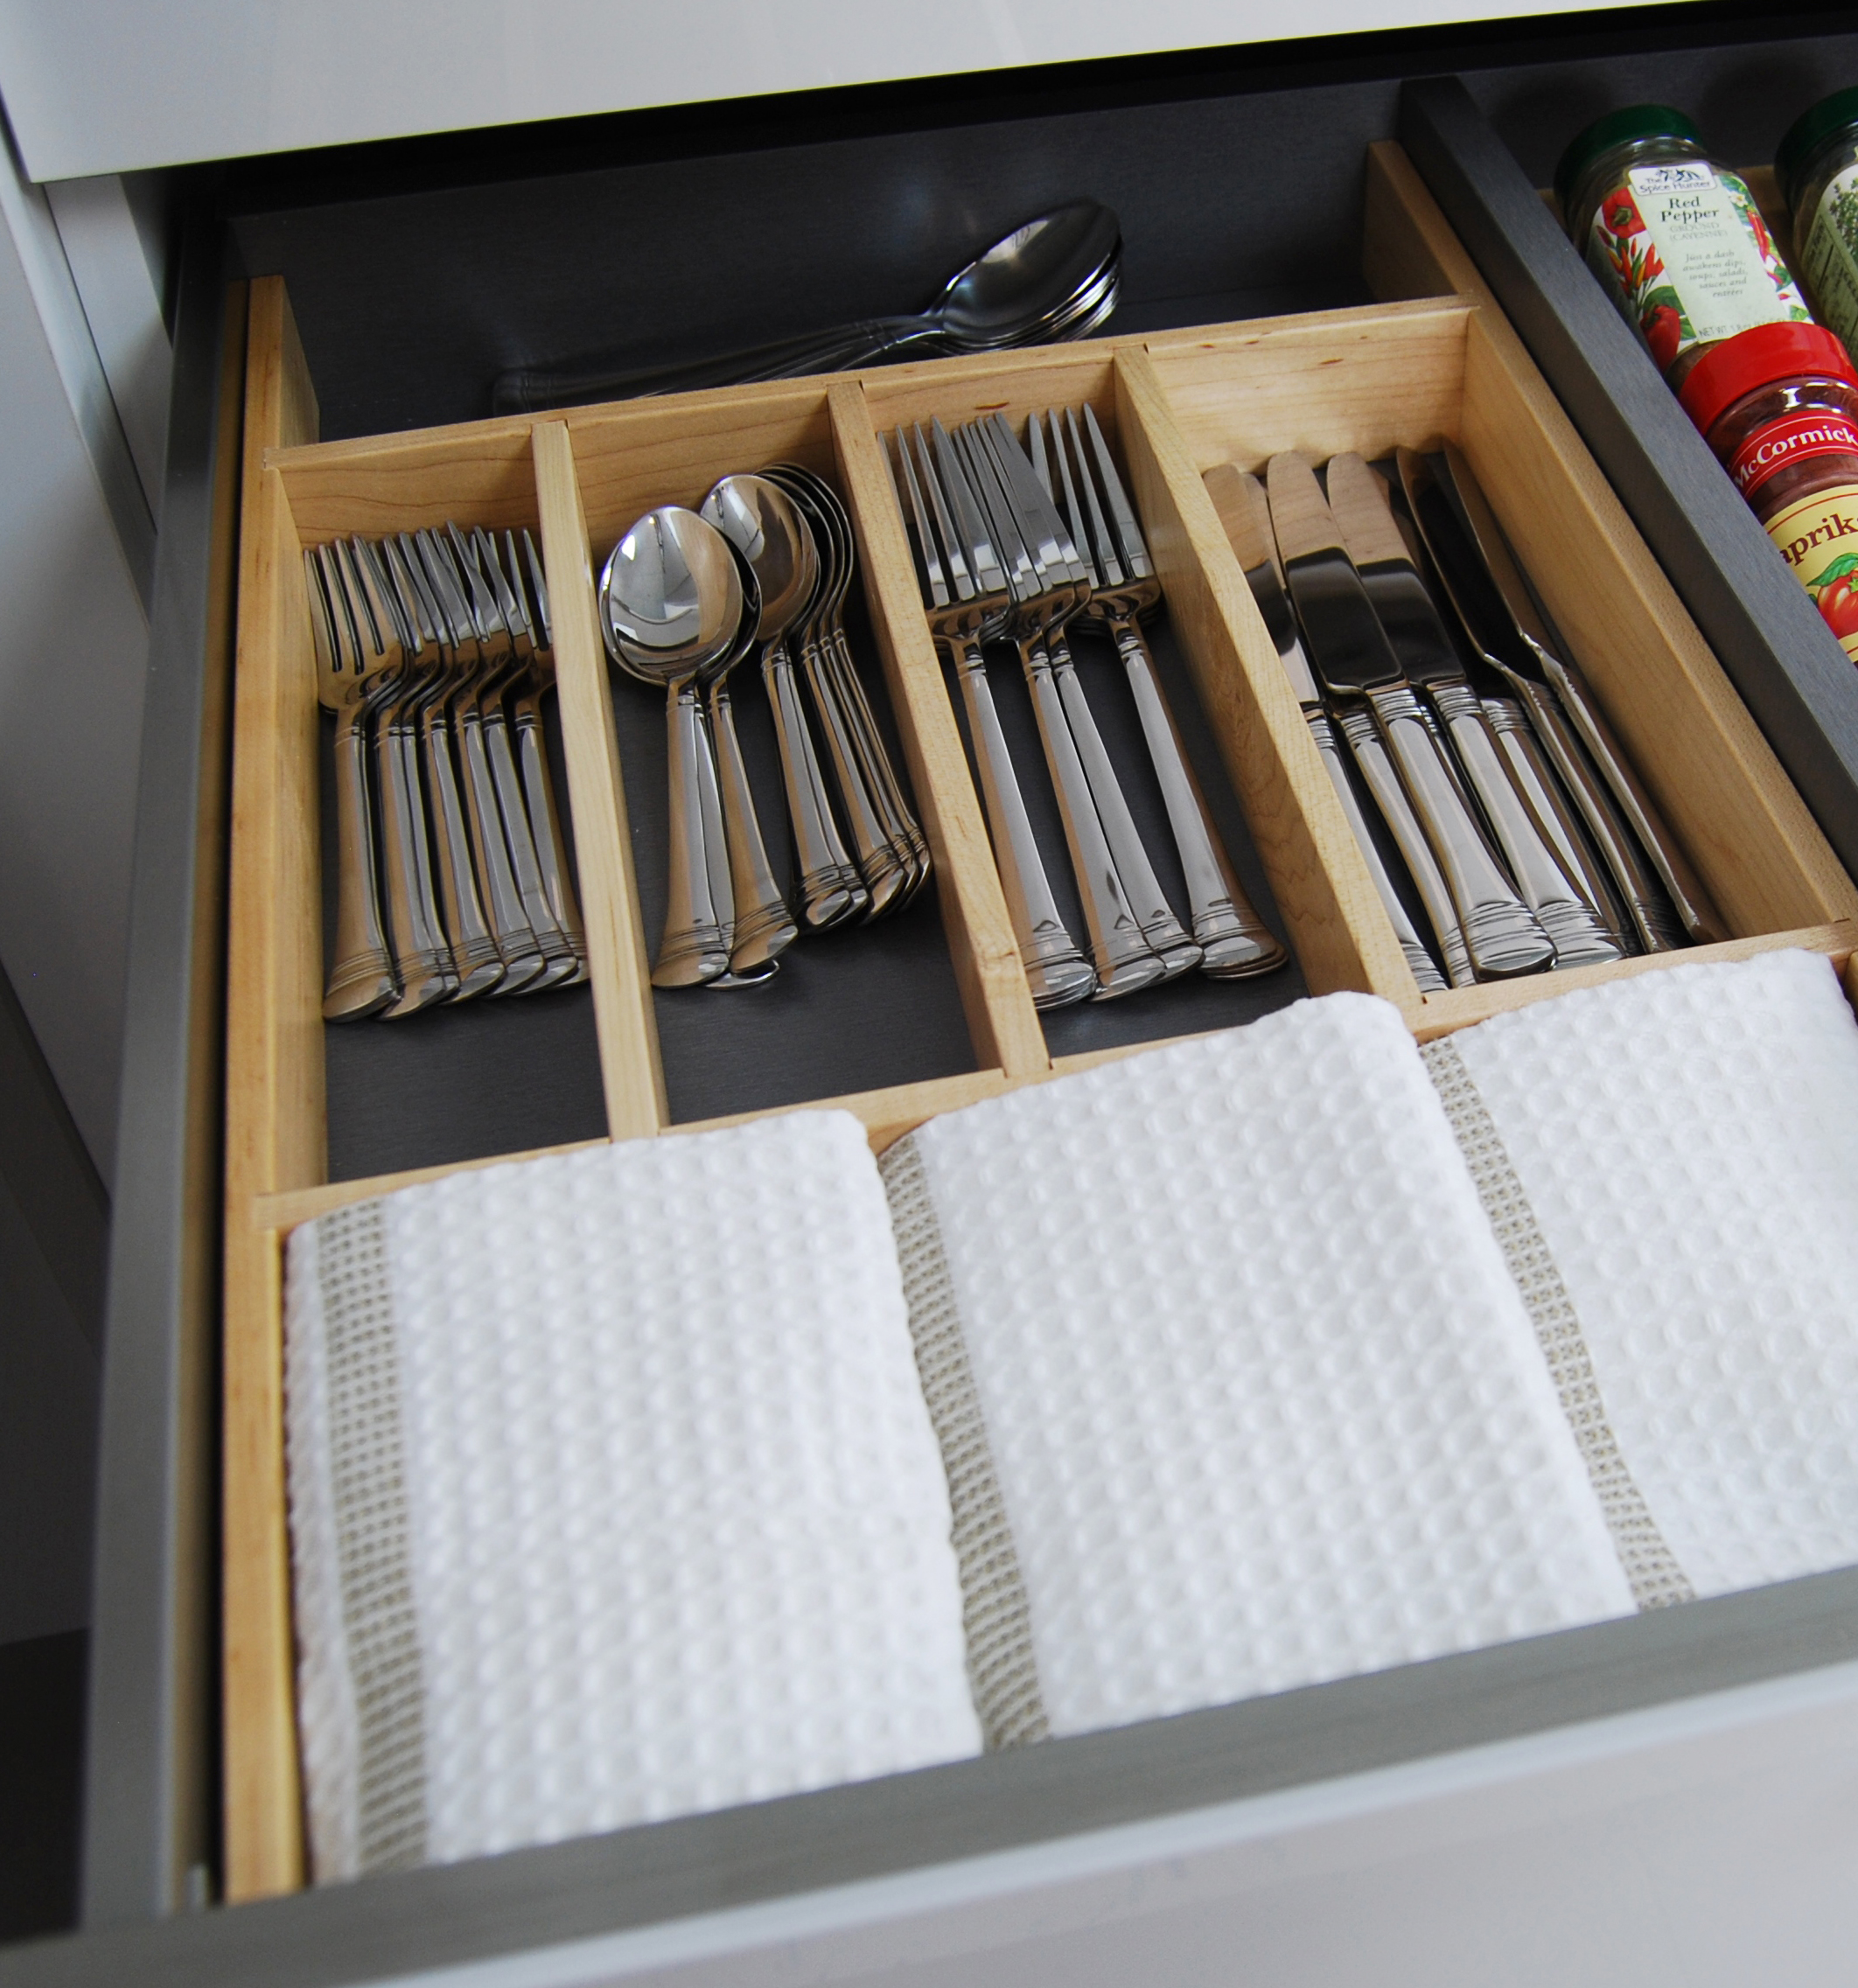 Cutlery Divider Tray in Stainless Steel Drawer